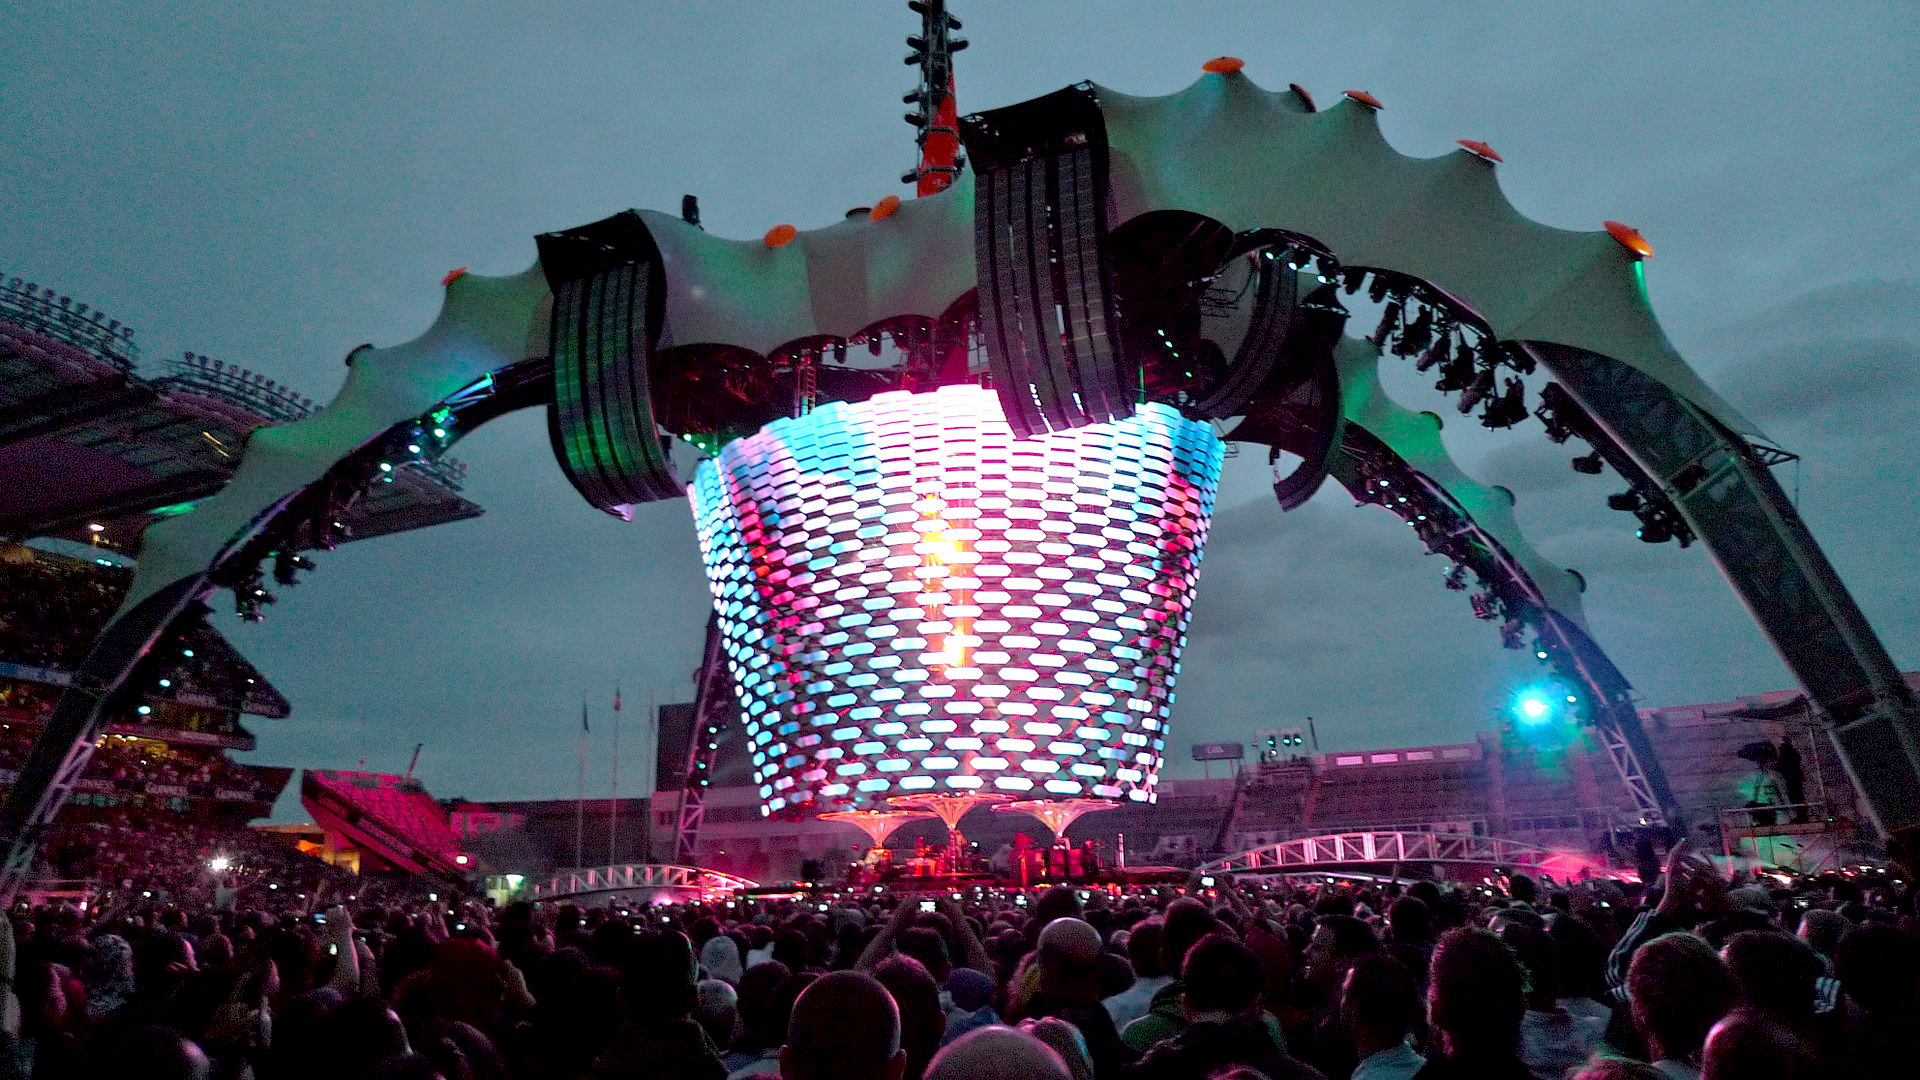 The stage structure from the U2 360° Tour, the largest ever constructed, allowed for a 360-degree seating configuration.